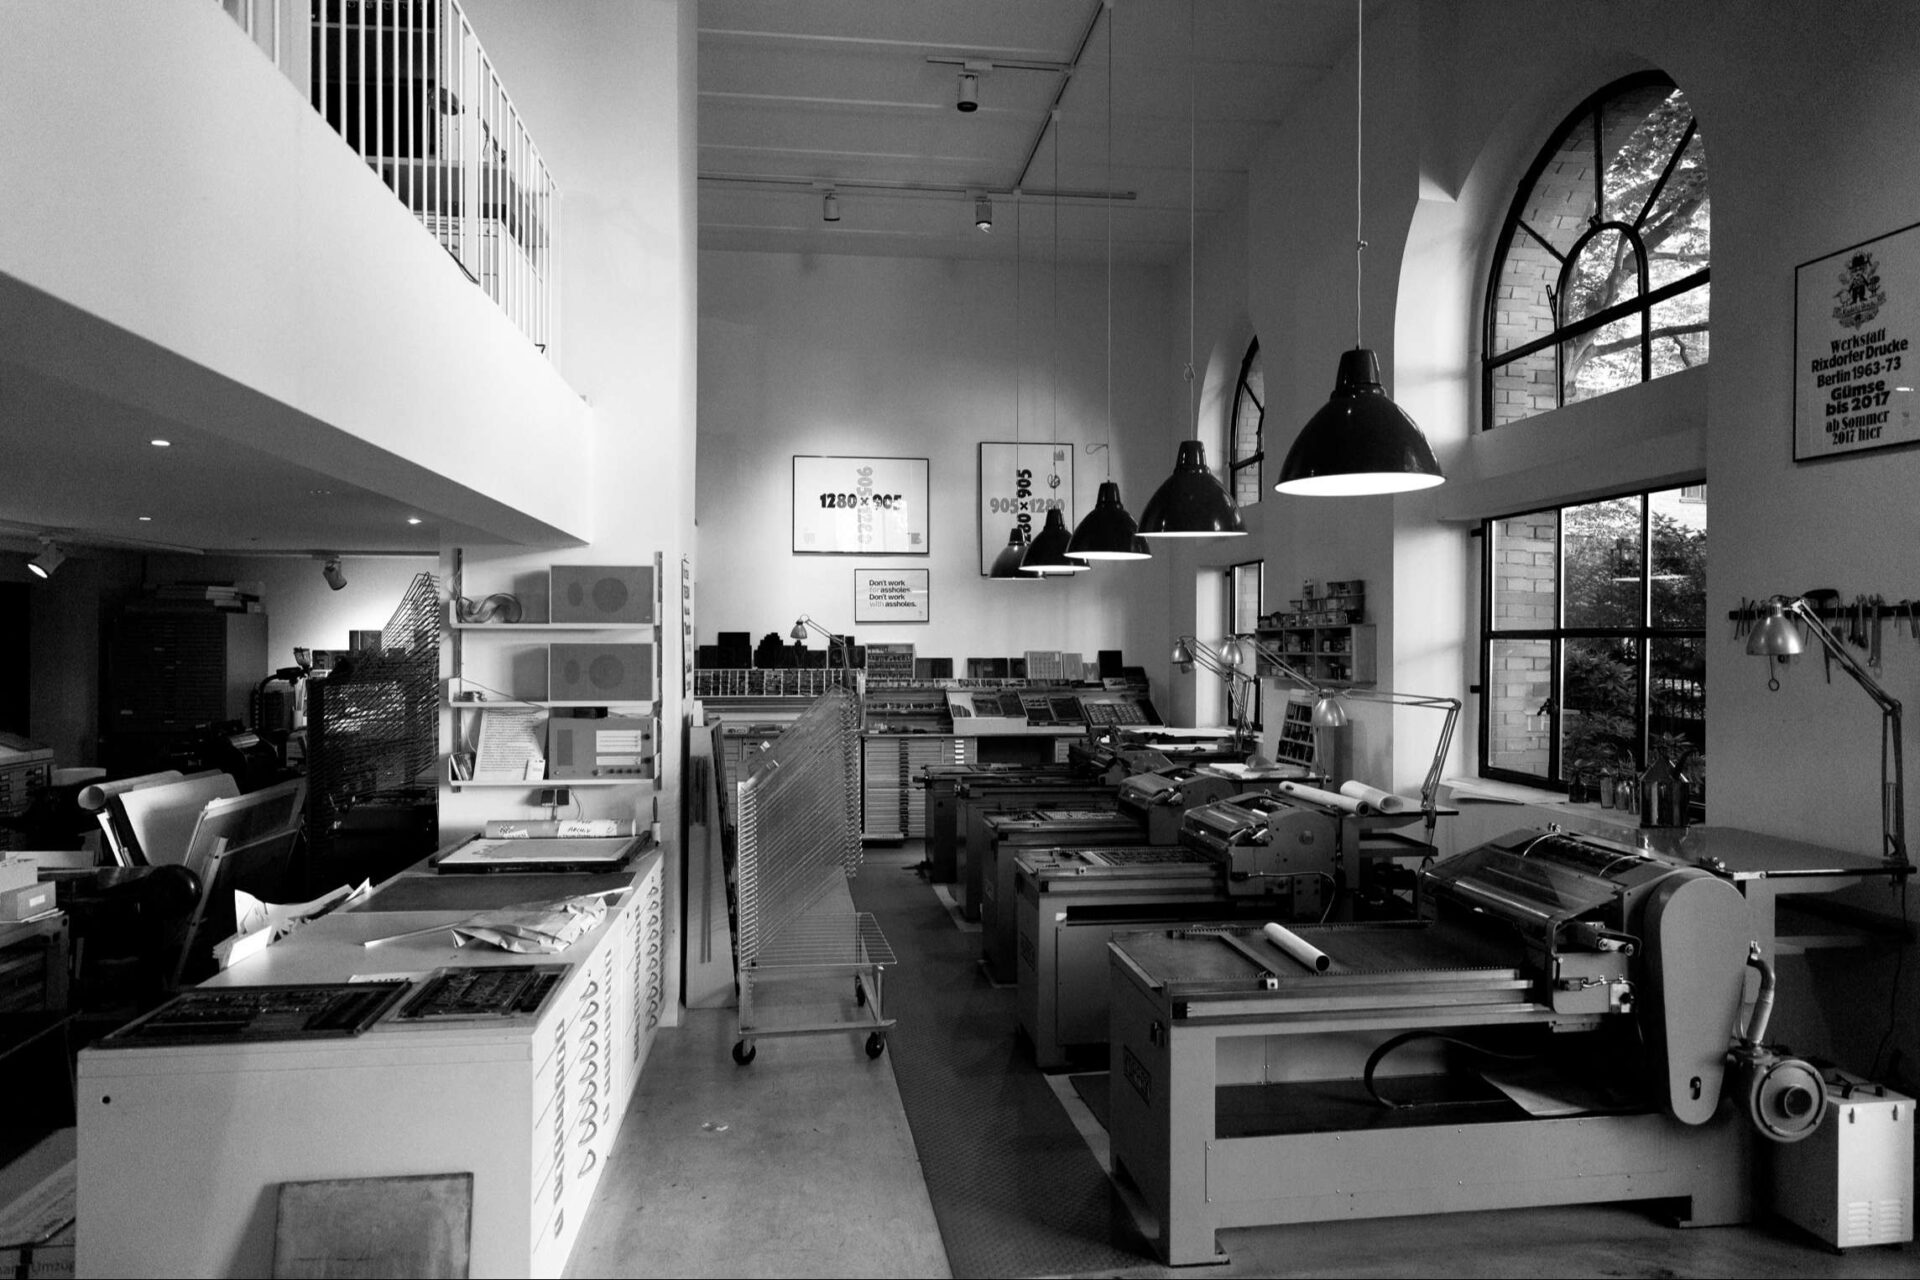 The Workshop of Erik Spiekermann is located in a former drawing school for girls.